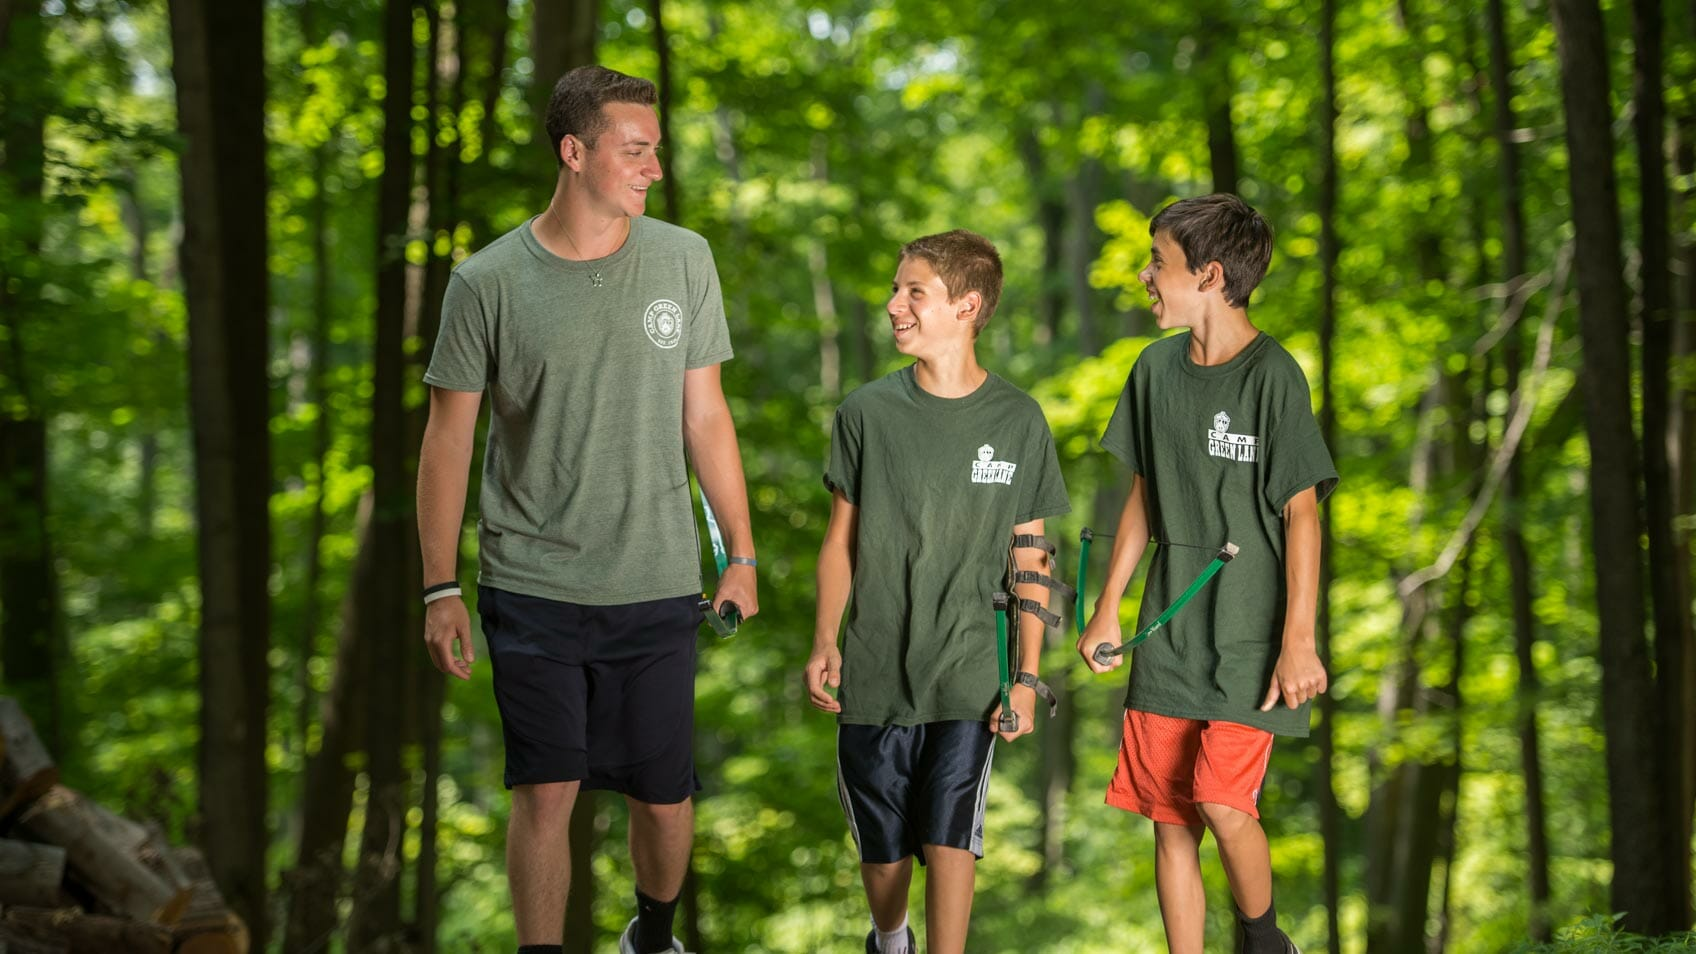 staff-campers-path-walk